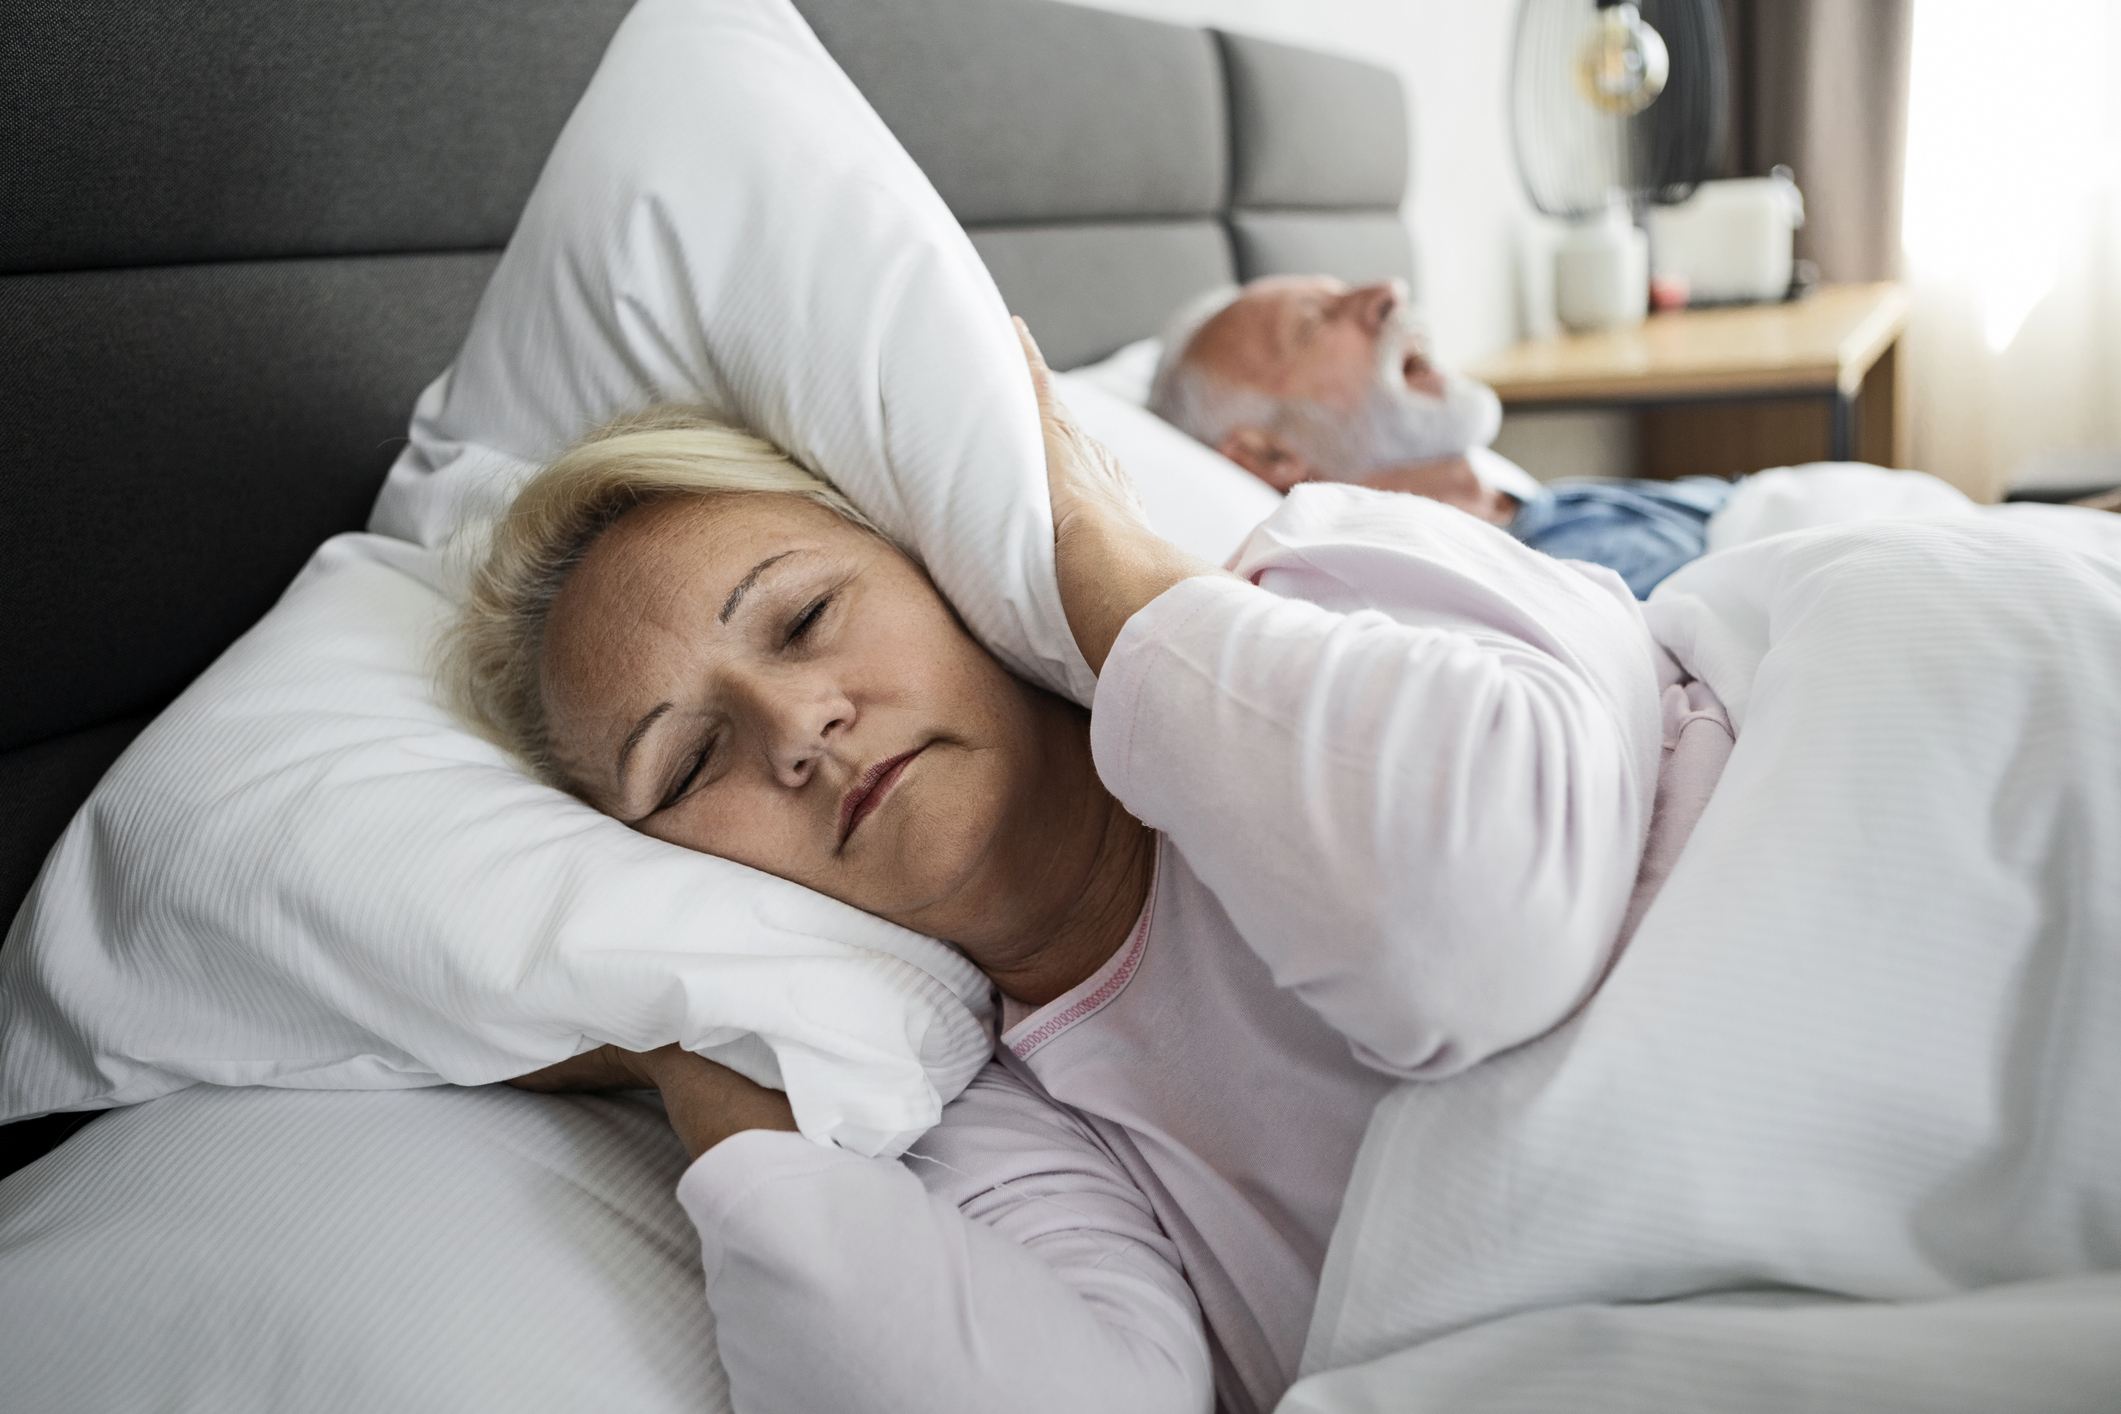 Wife blocking ears with pillow while husband snoring in sleep